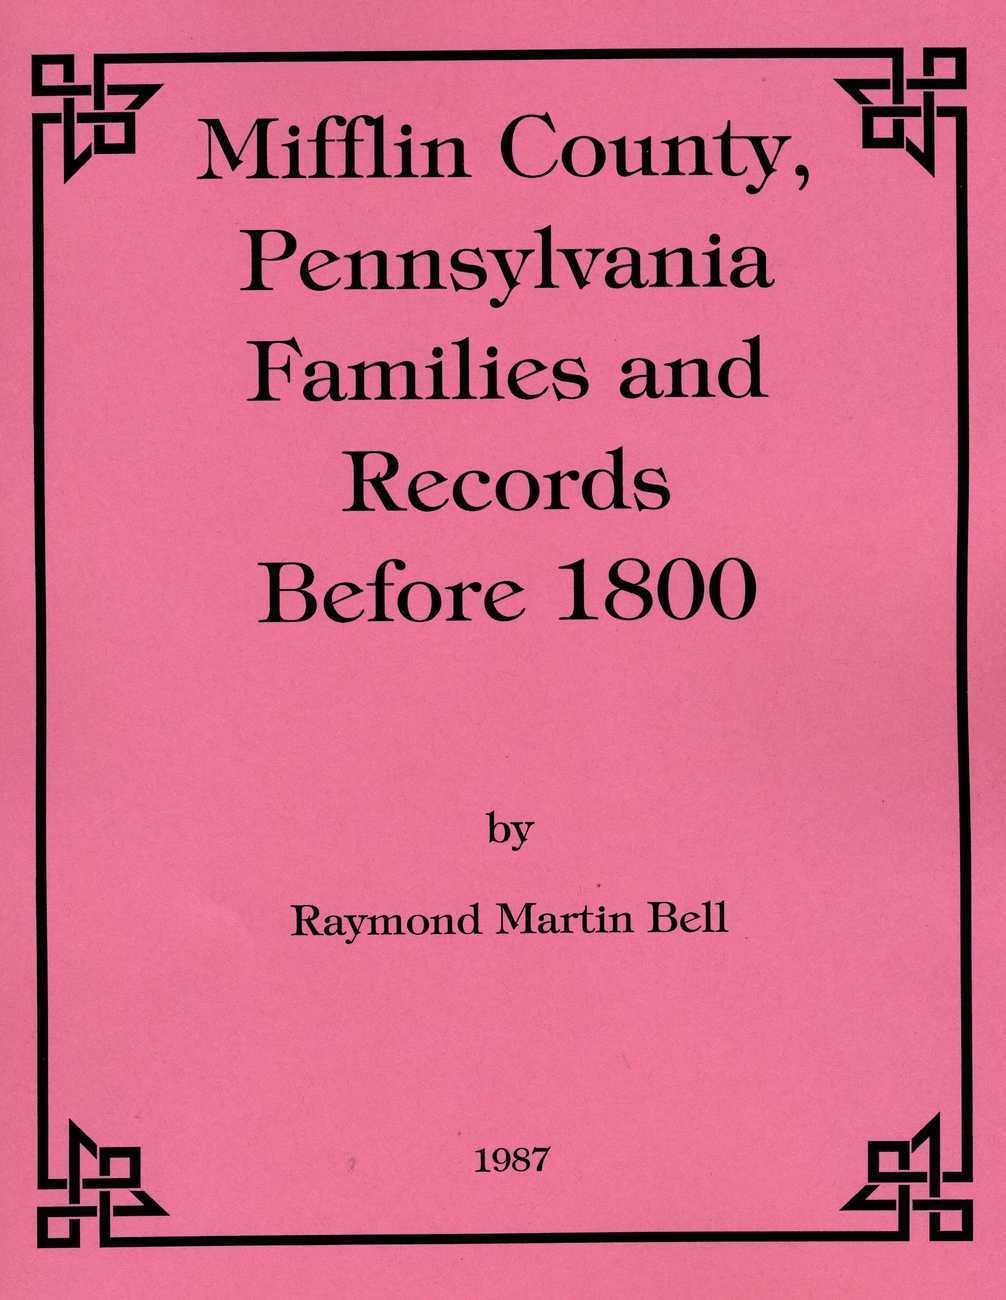 Mifflin Co. Families and Records before 1800